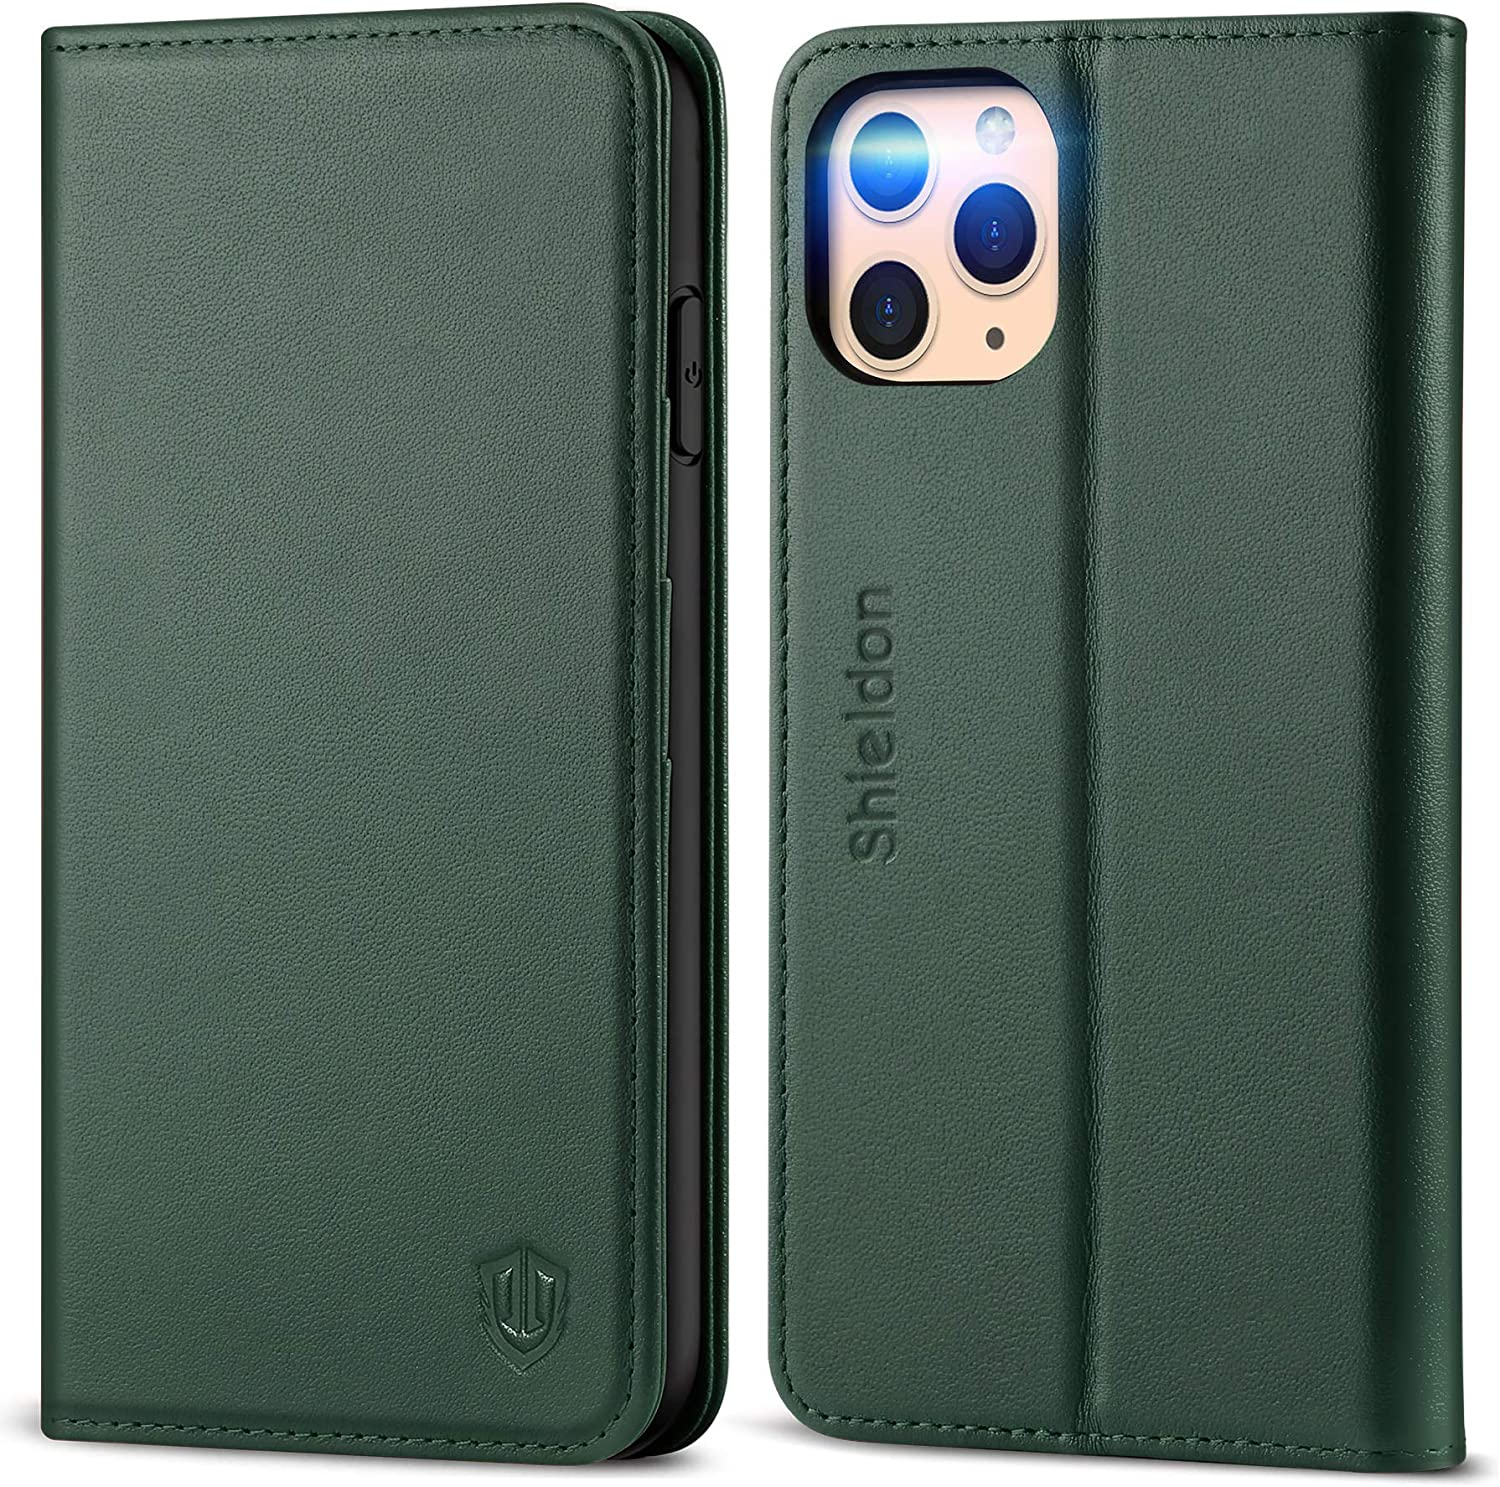 SHIELDON iPhone 11 Pro Max Case, Genuine Leather Wallet Auto Sleep Wake Case Folio Stand RFID Blocking Credit Card Slot Magnetic Protective Cover Compatible with iPhone 11 Pro Max - Midnight Green